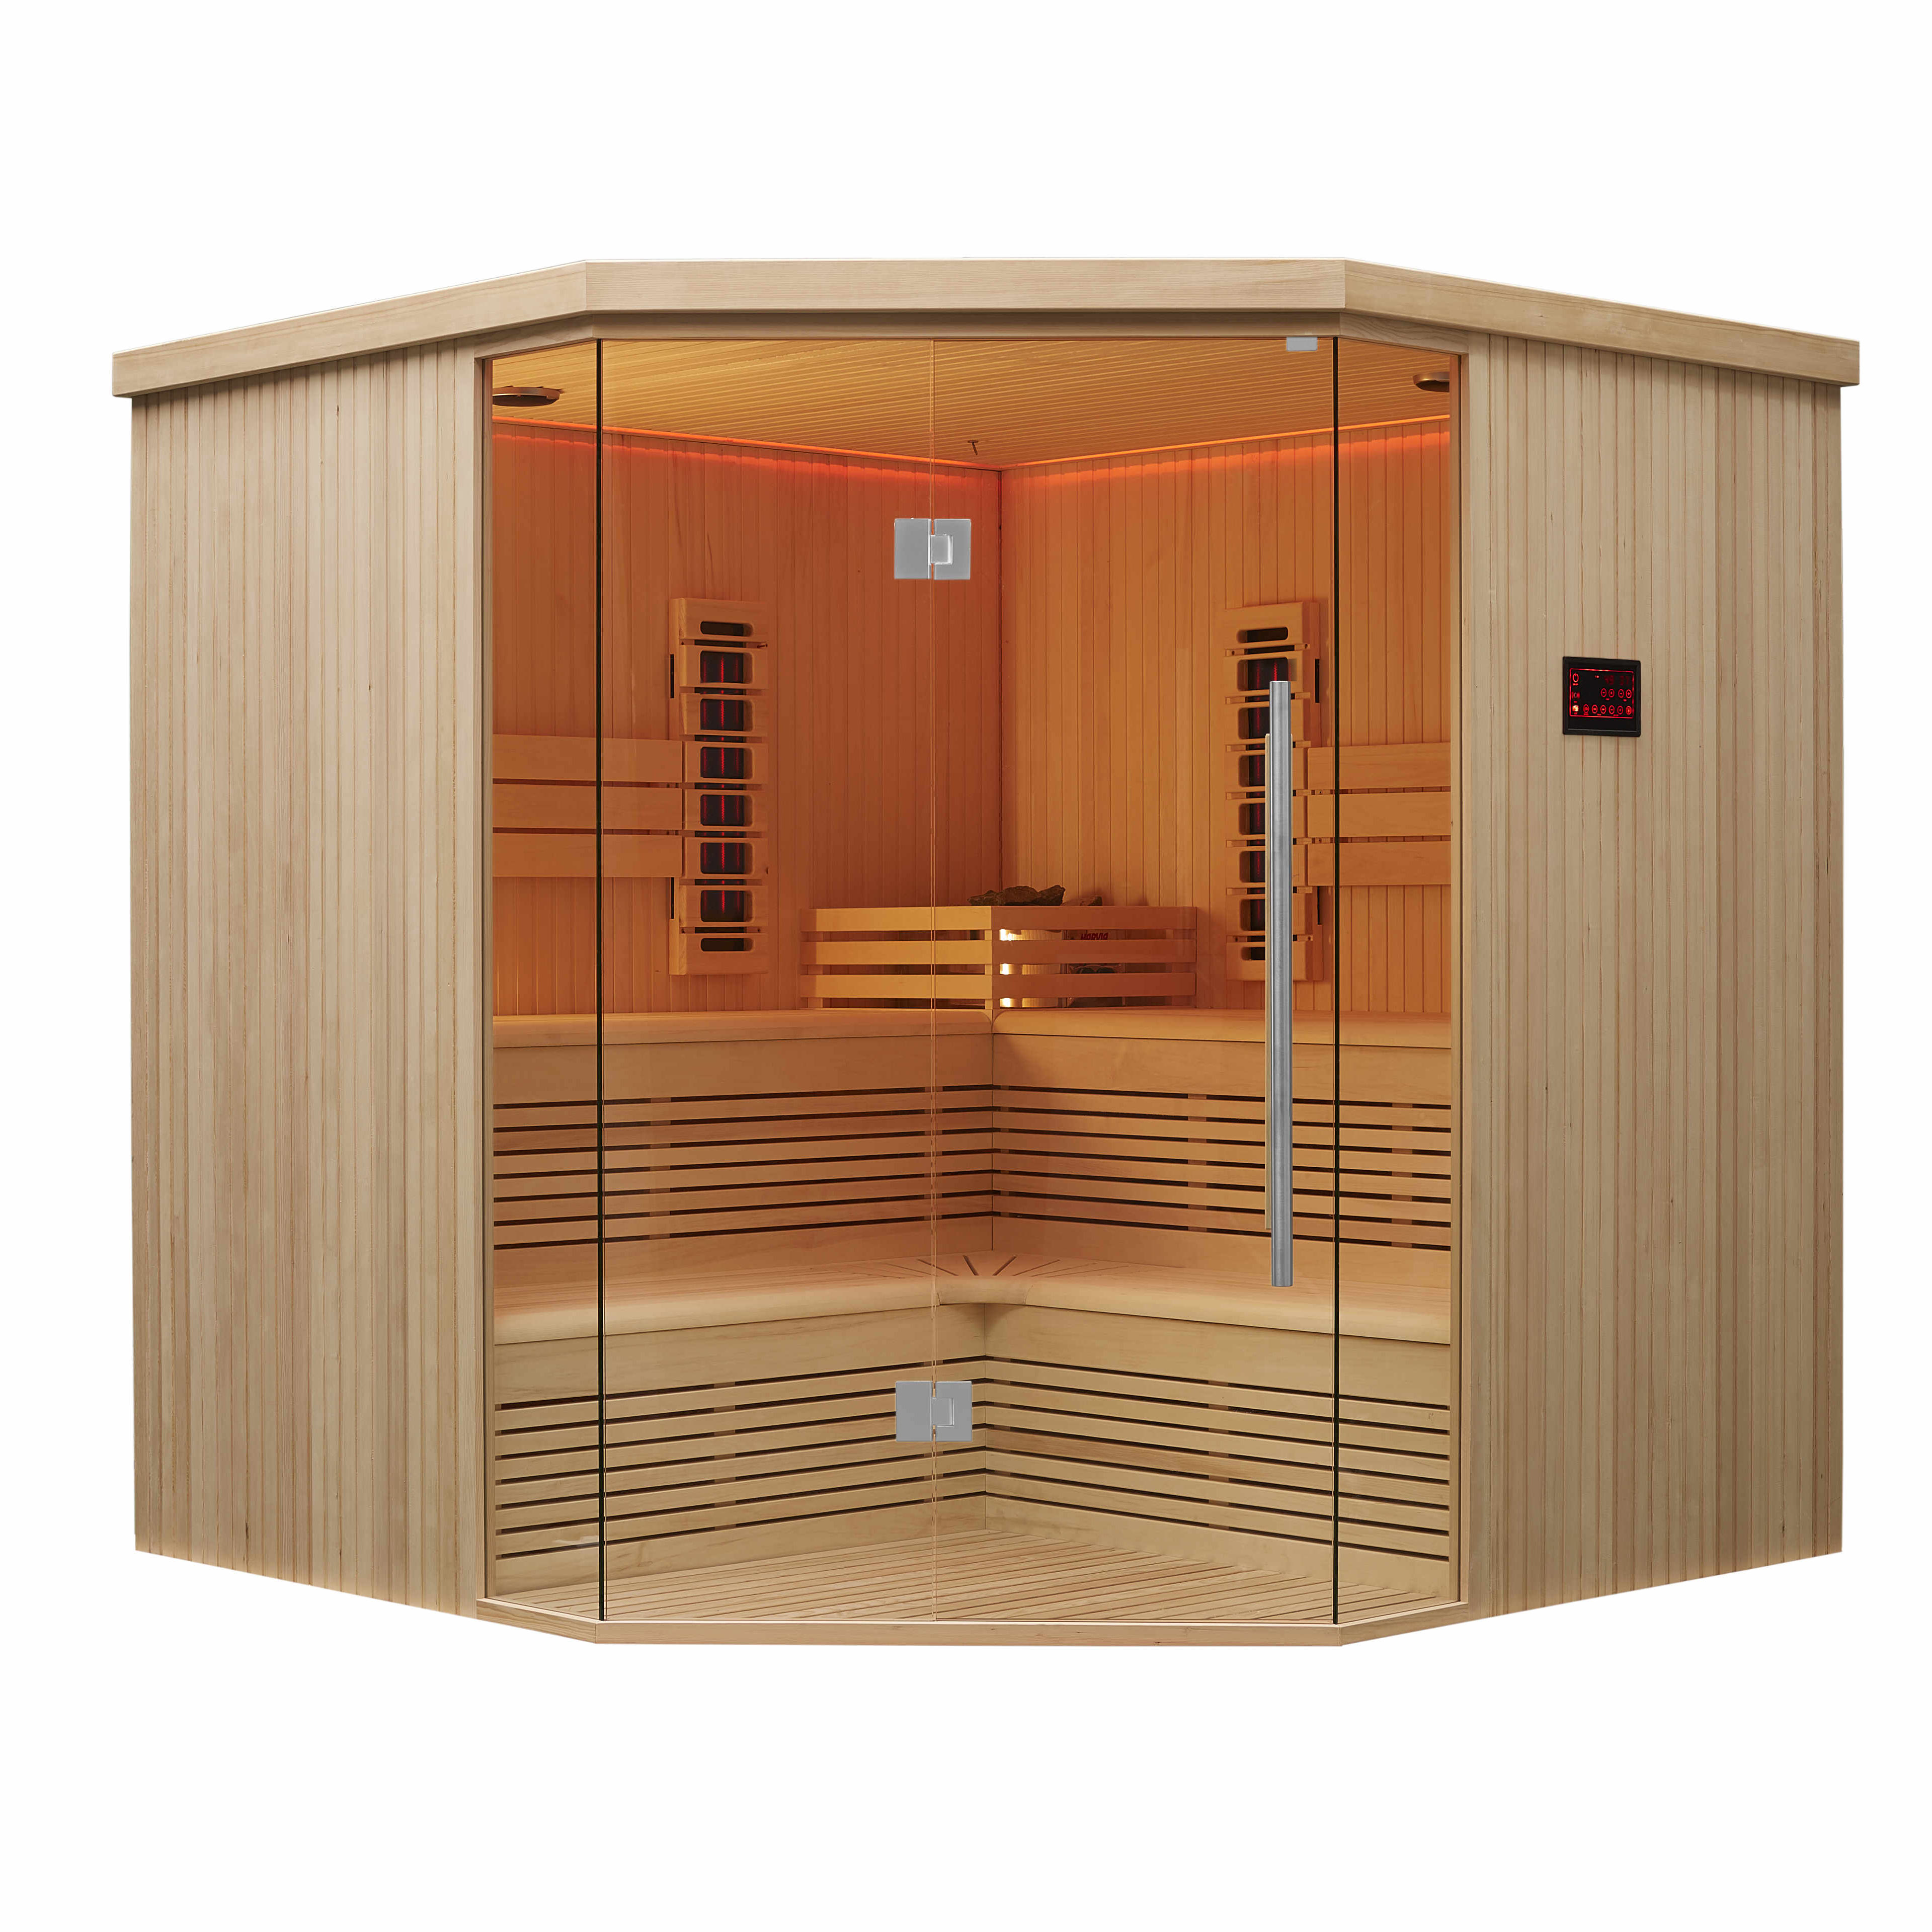 4-6 persson infrared sauna room dry sauna WS-1813